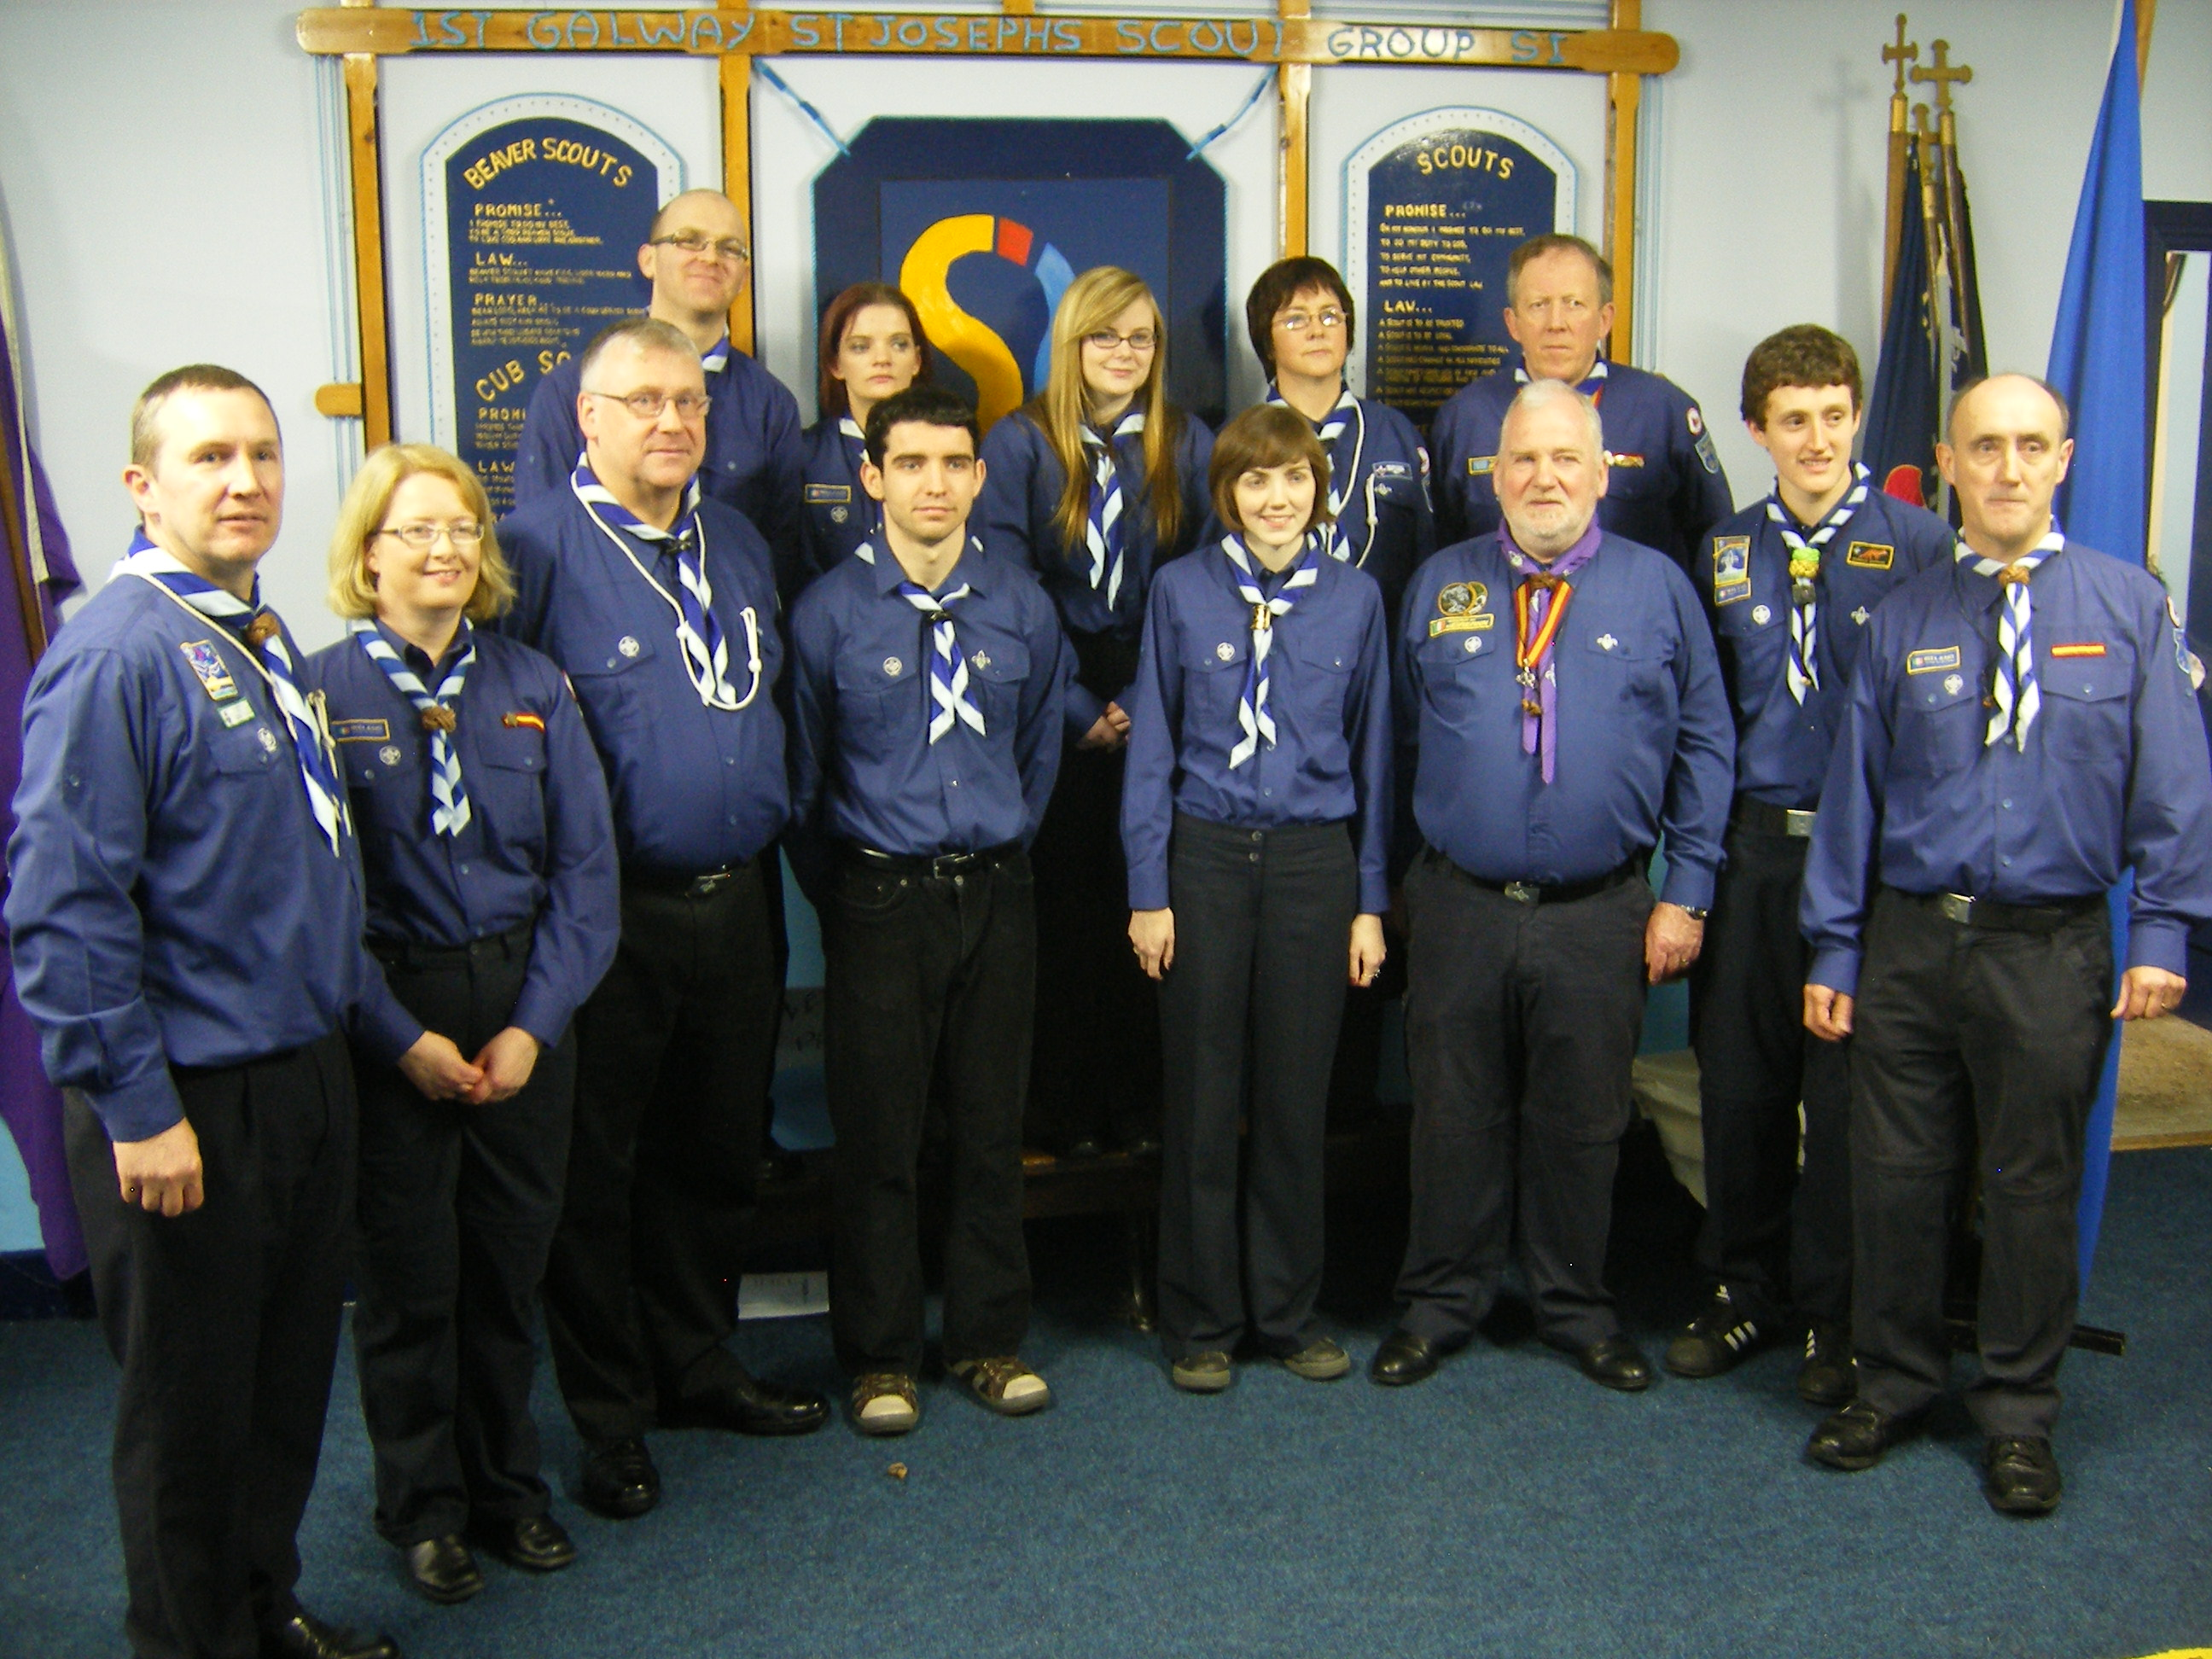 1st Galway Leaders with Chief Scout Michael J Shinnick